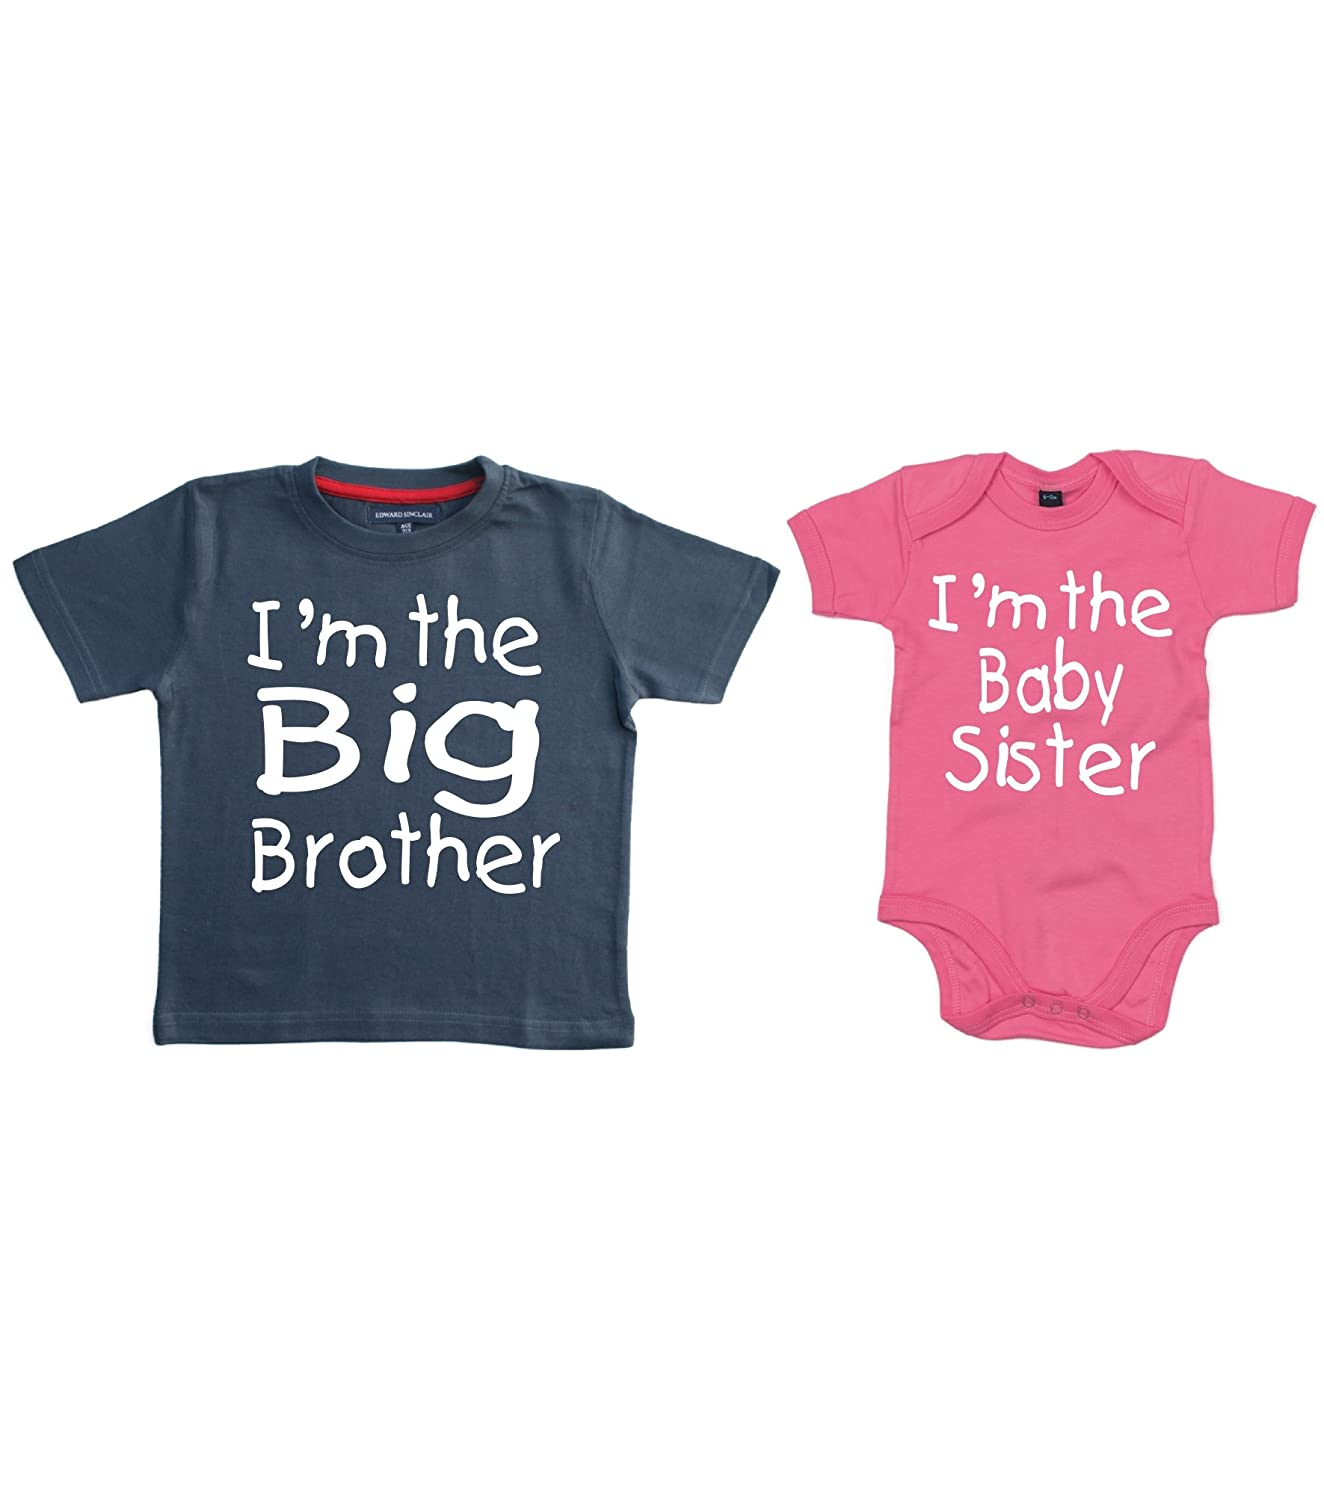 Lovely Buy big brother little sister t shirts - 61% OFF! DB34